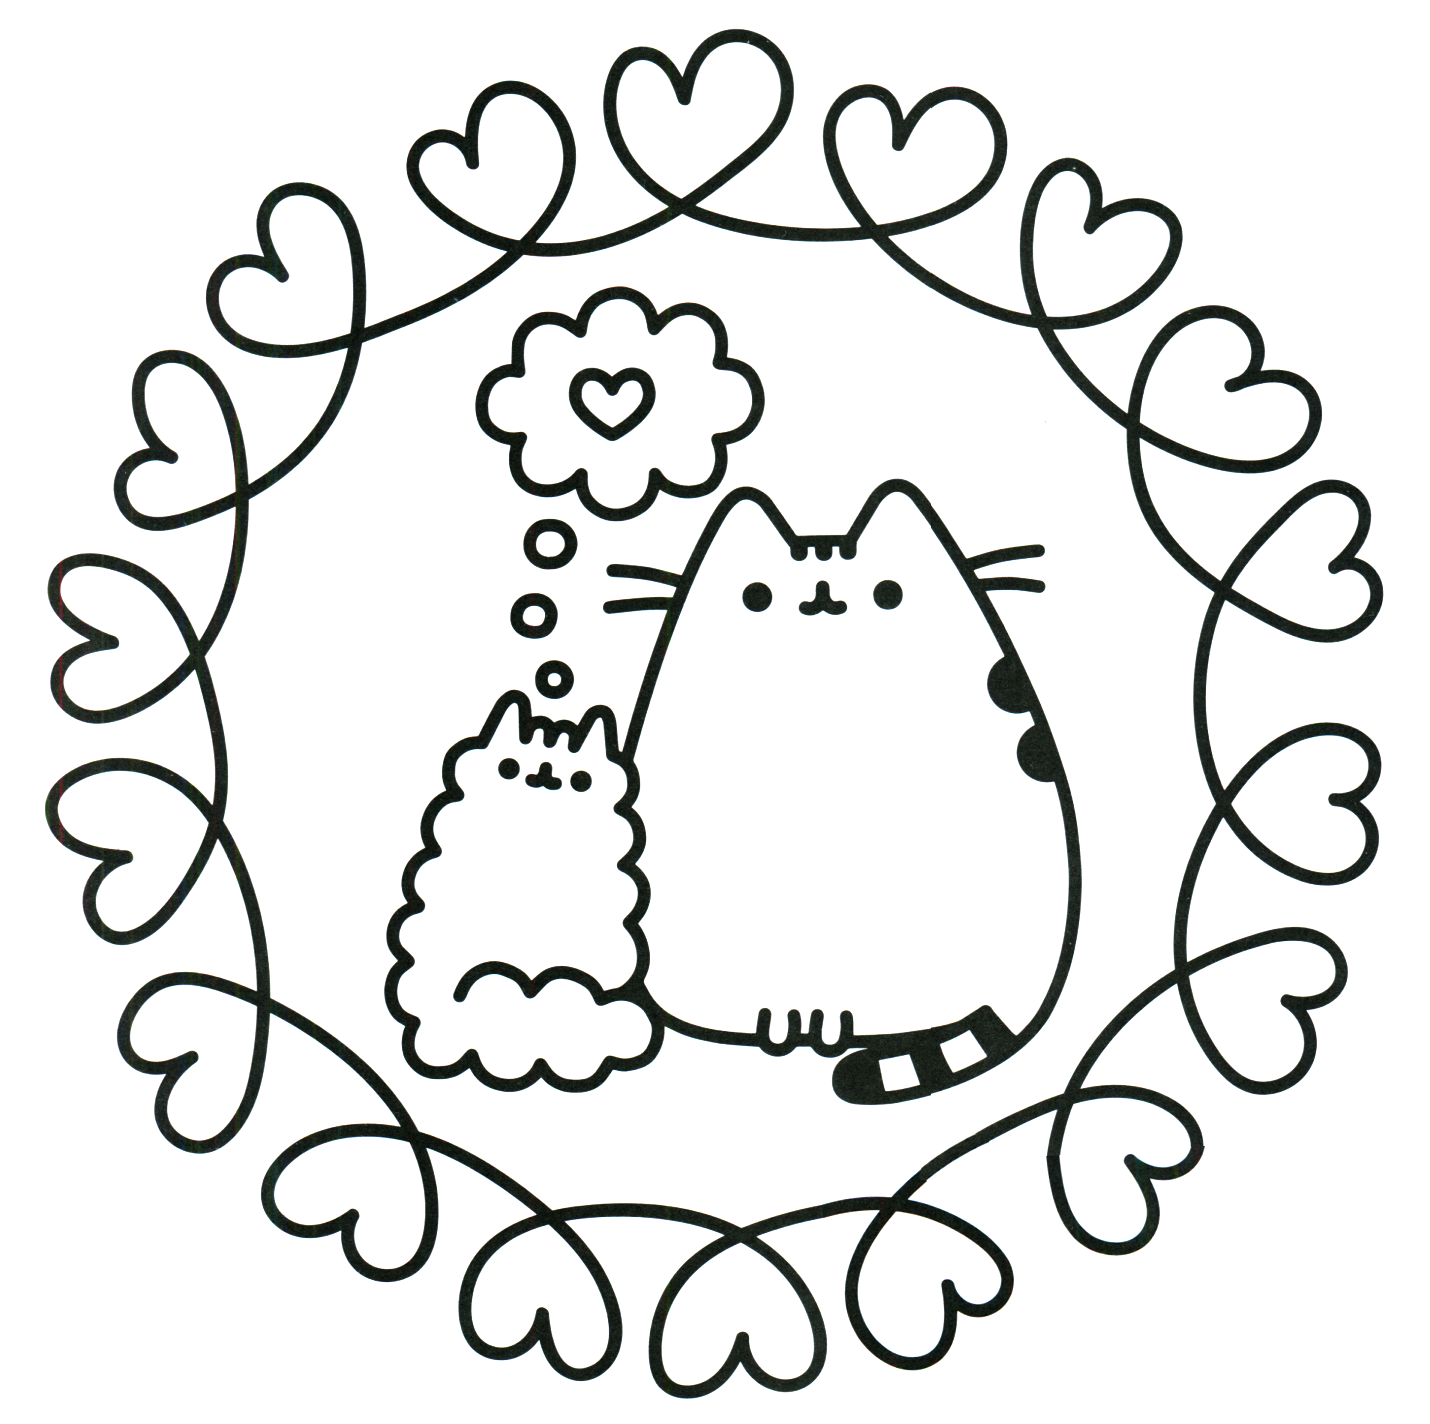 Pusheen coloring pages best coloring pages for kids for Love coloring pages printable